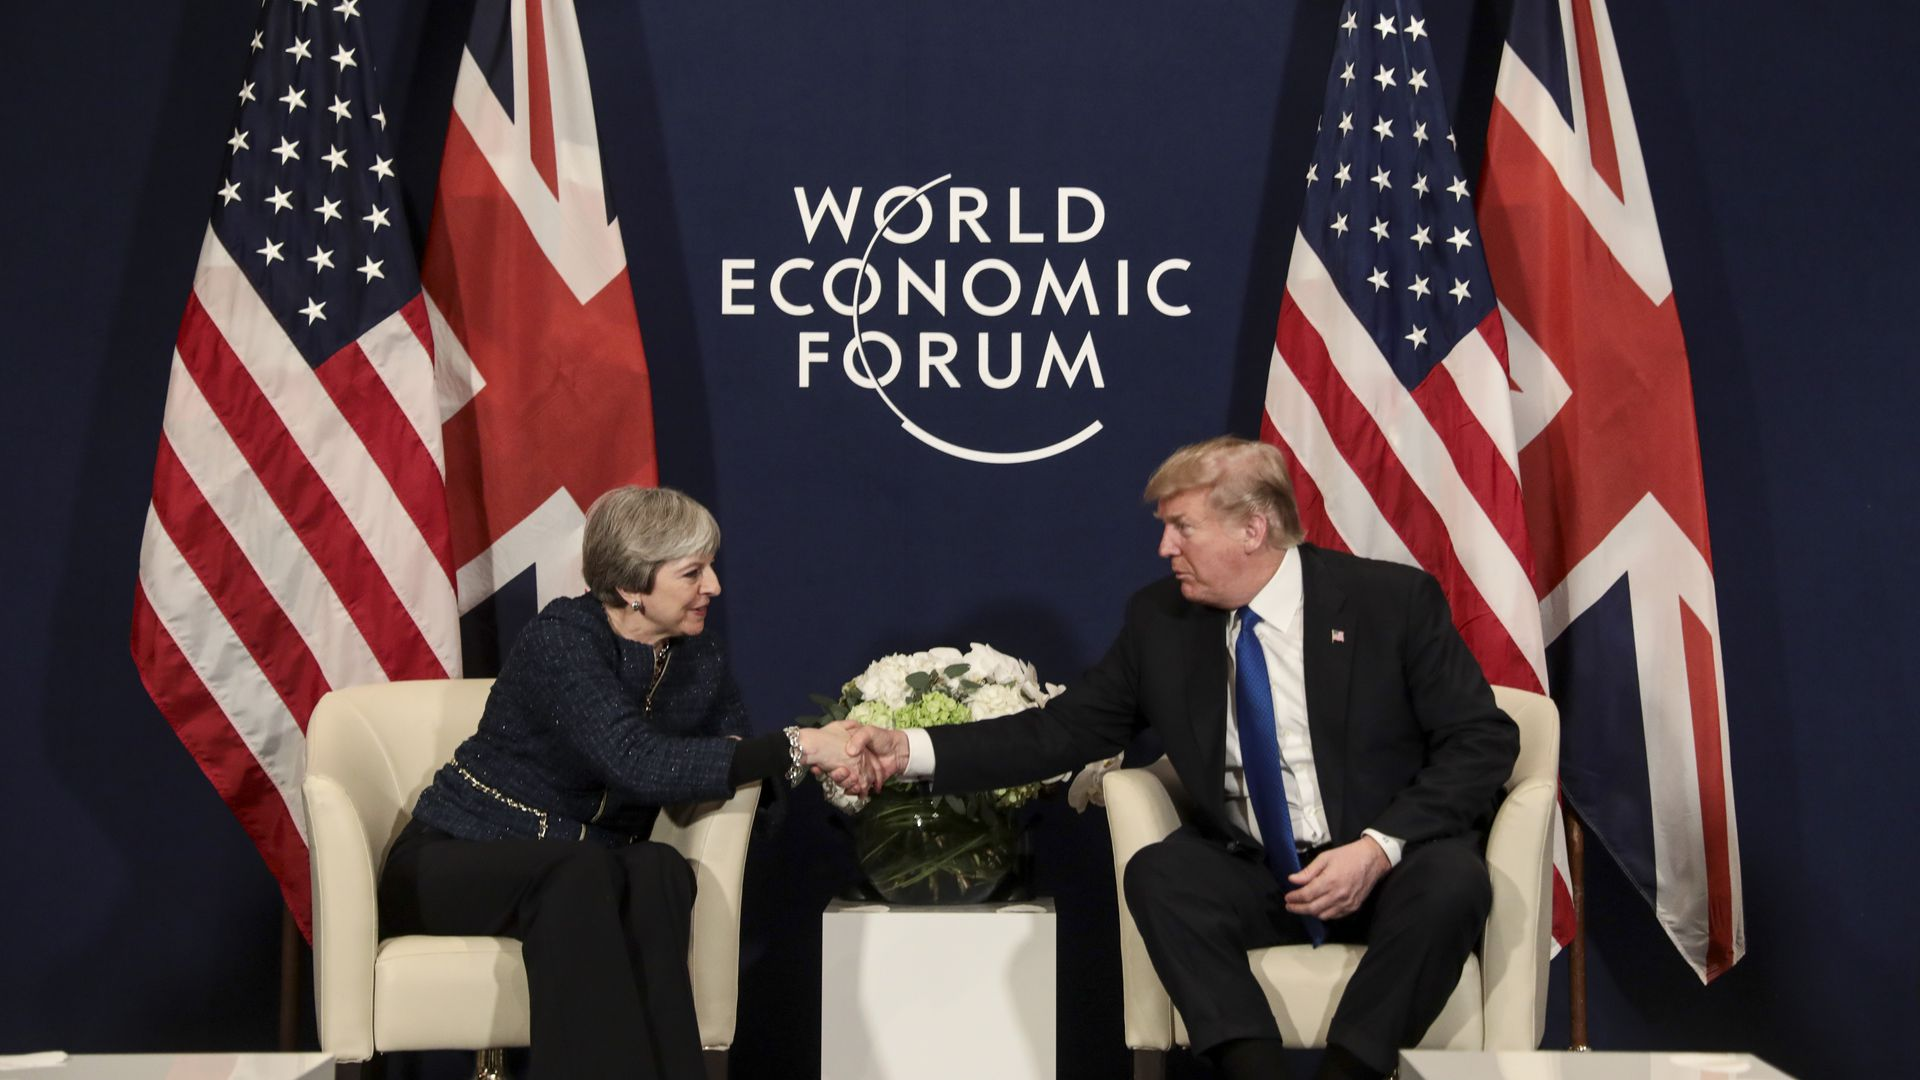 May and Trump